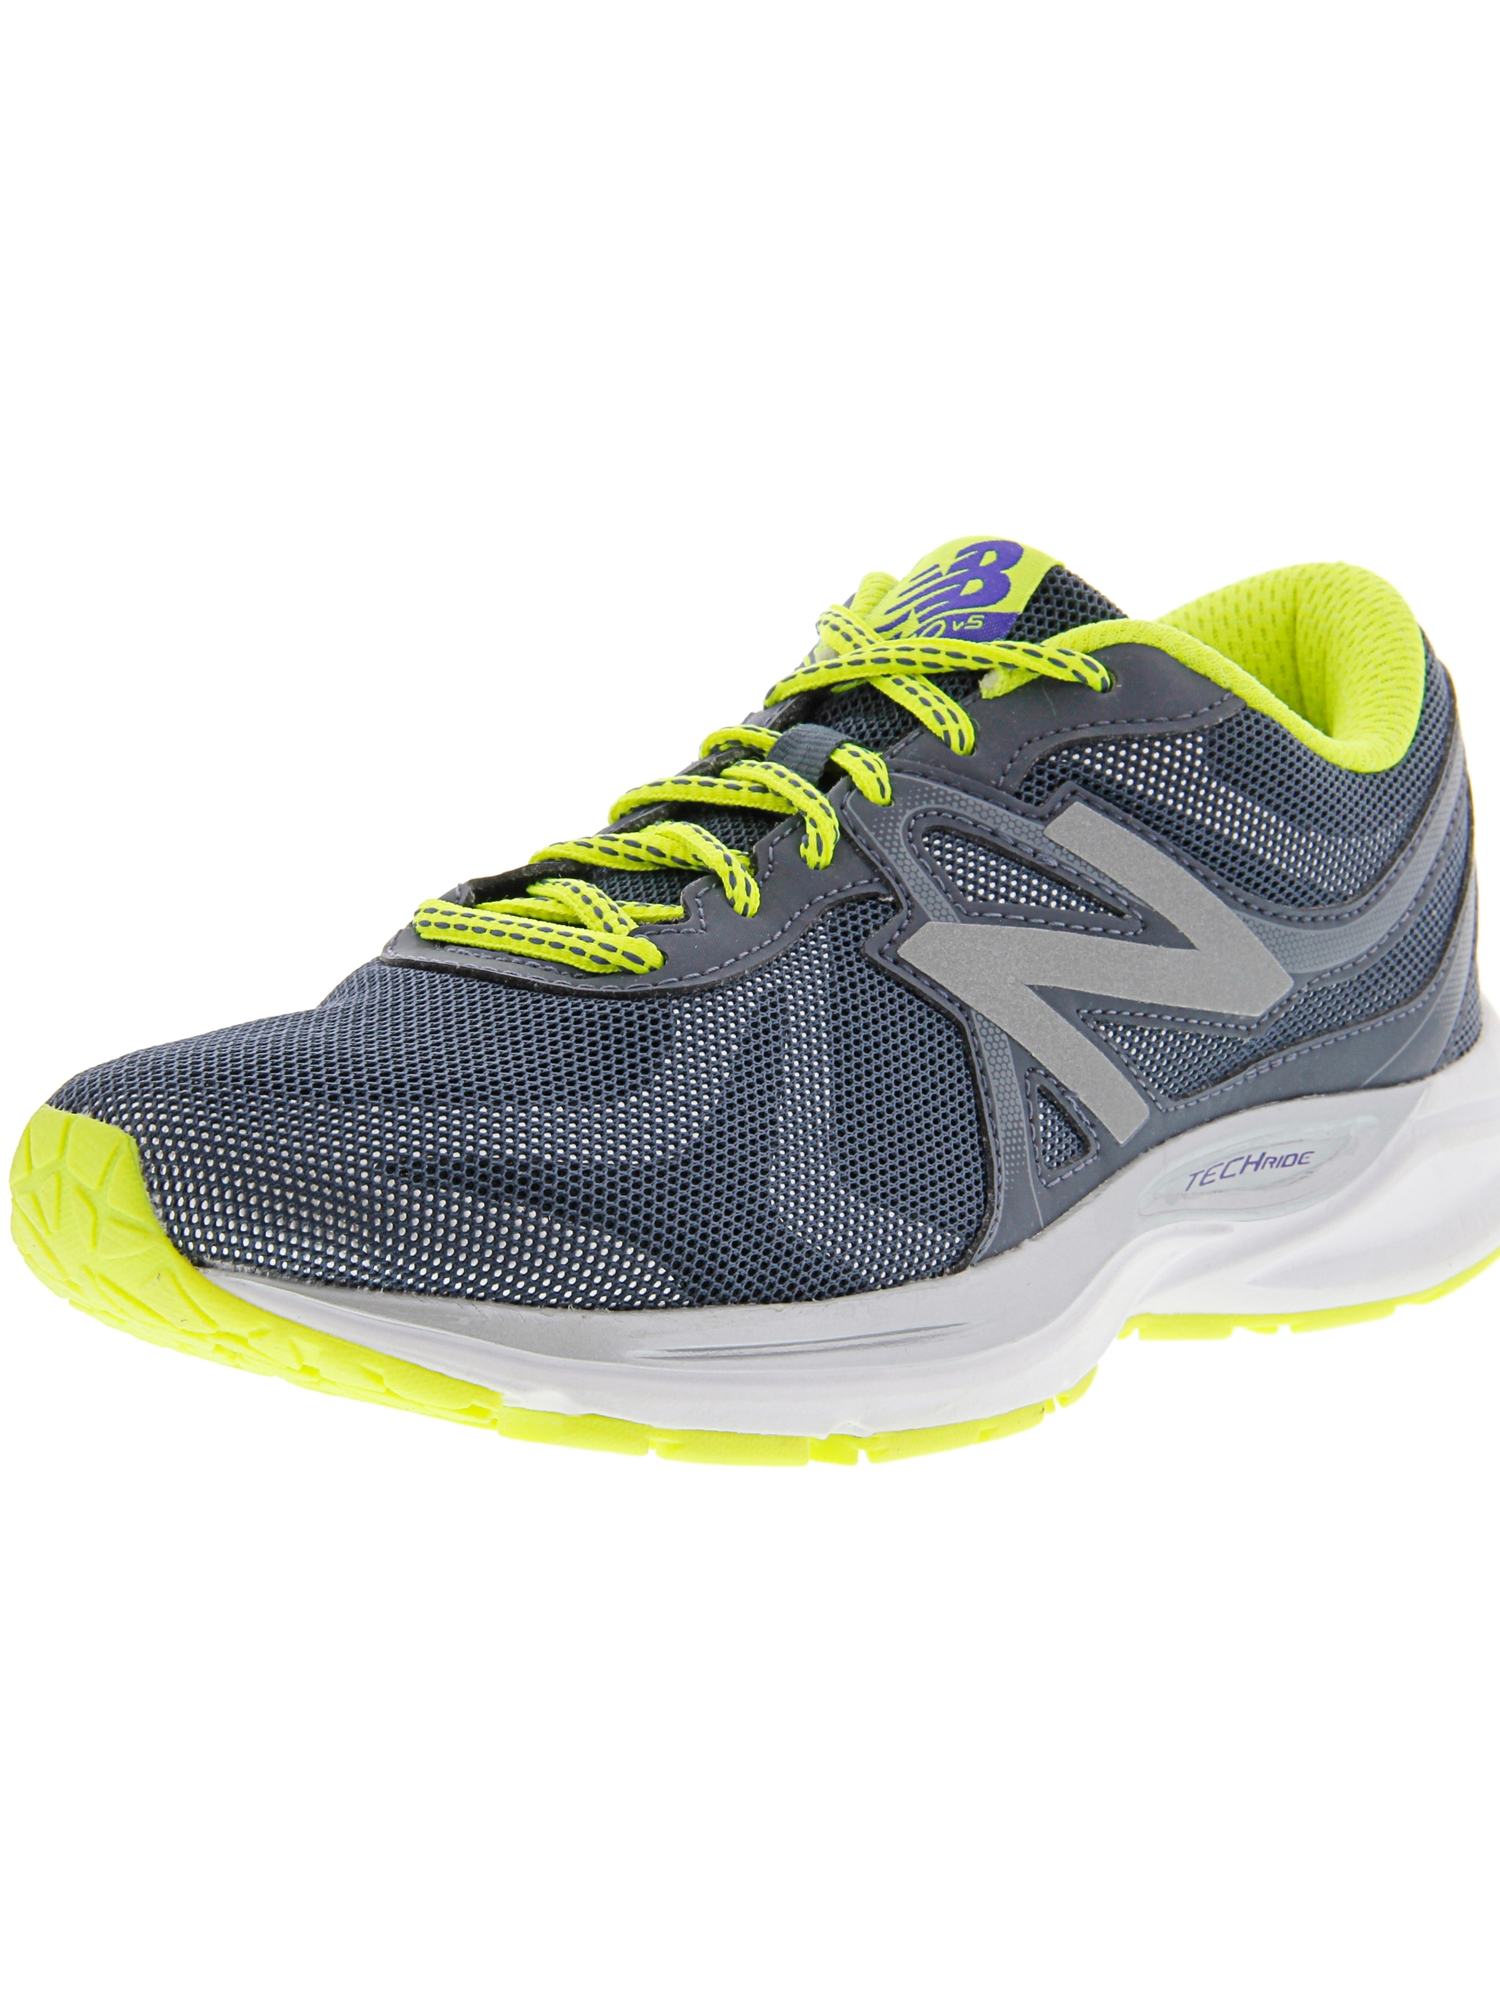 New Balance Women's W580 Lg5 Ankle-High Running Shoe - 9M